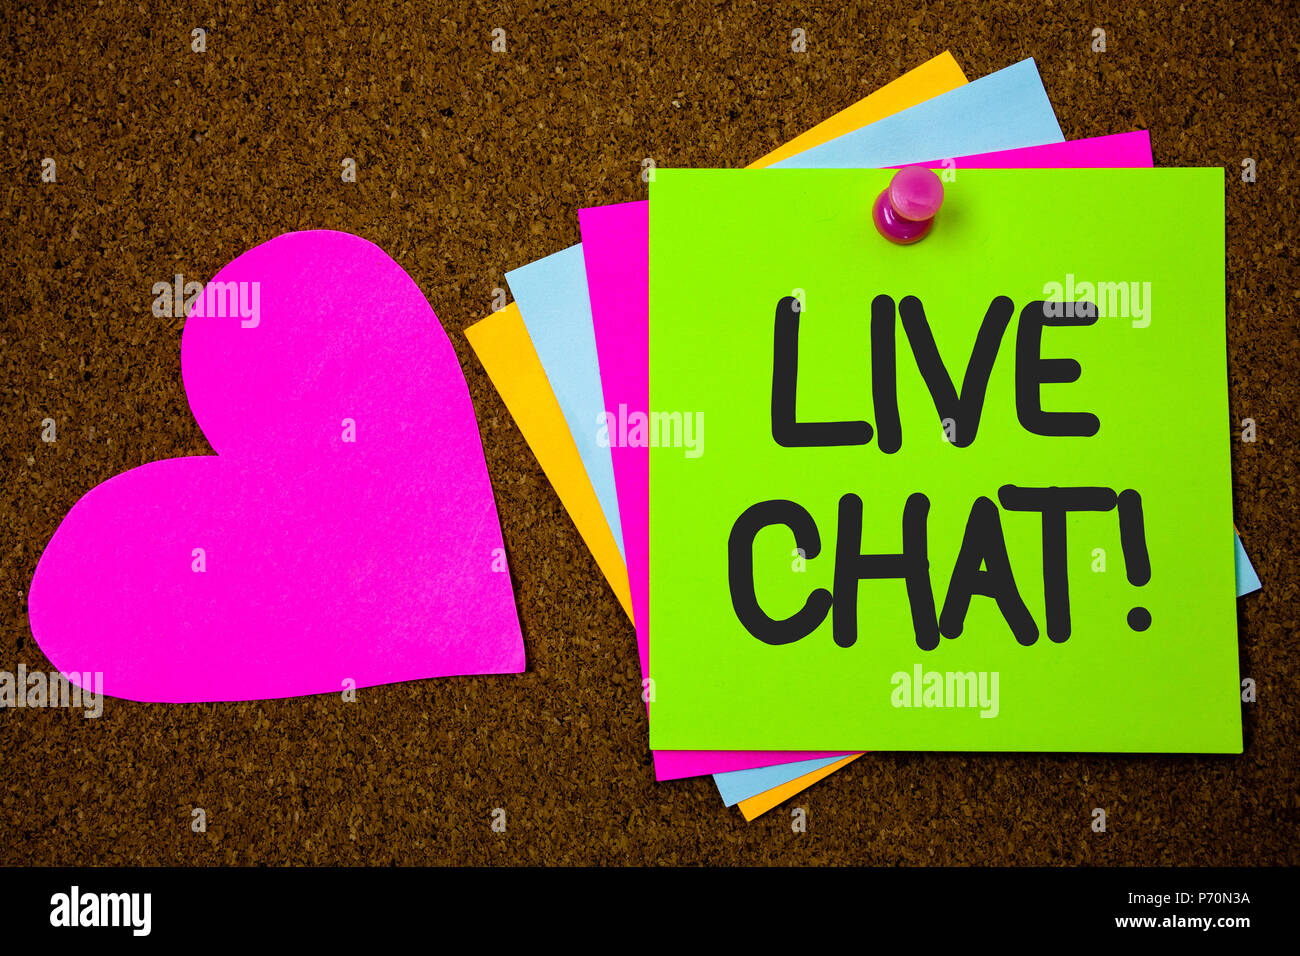 live call online